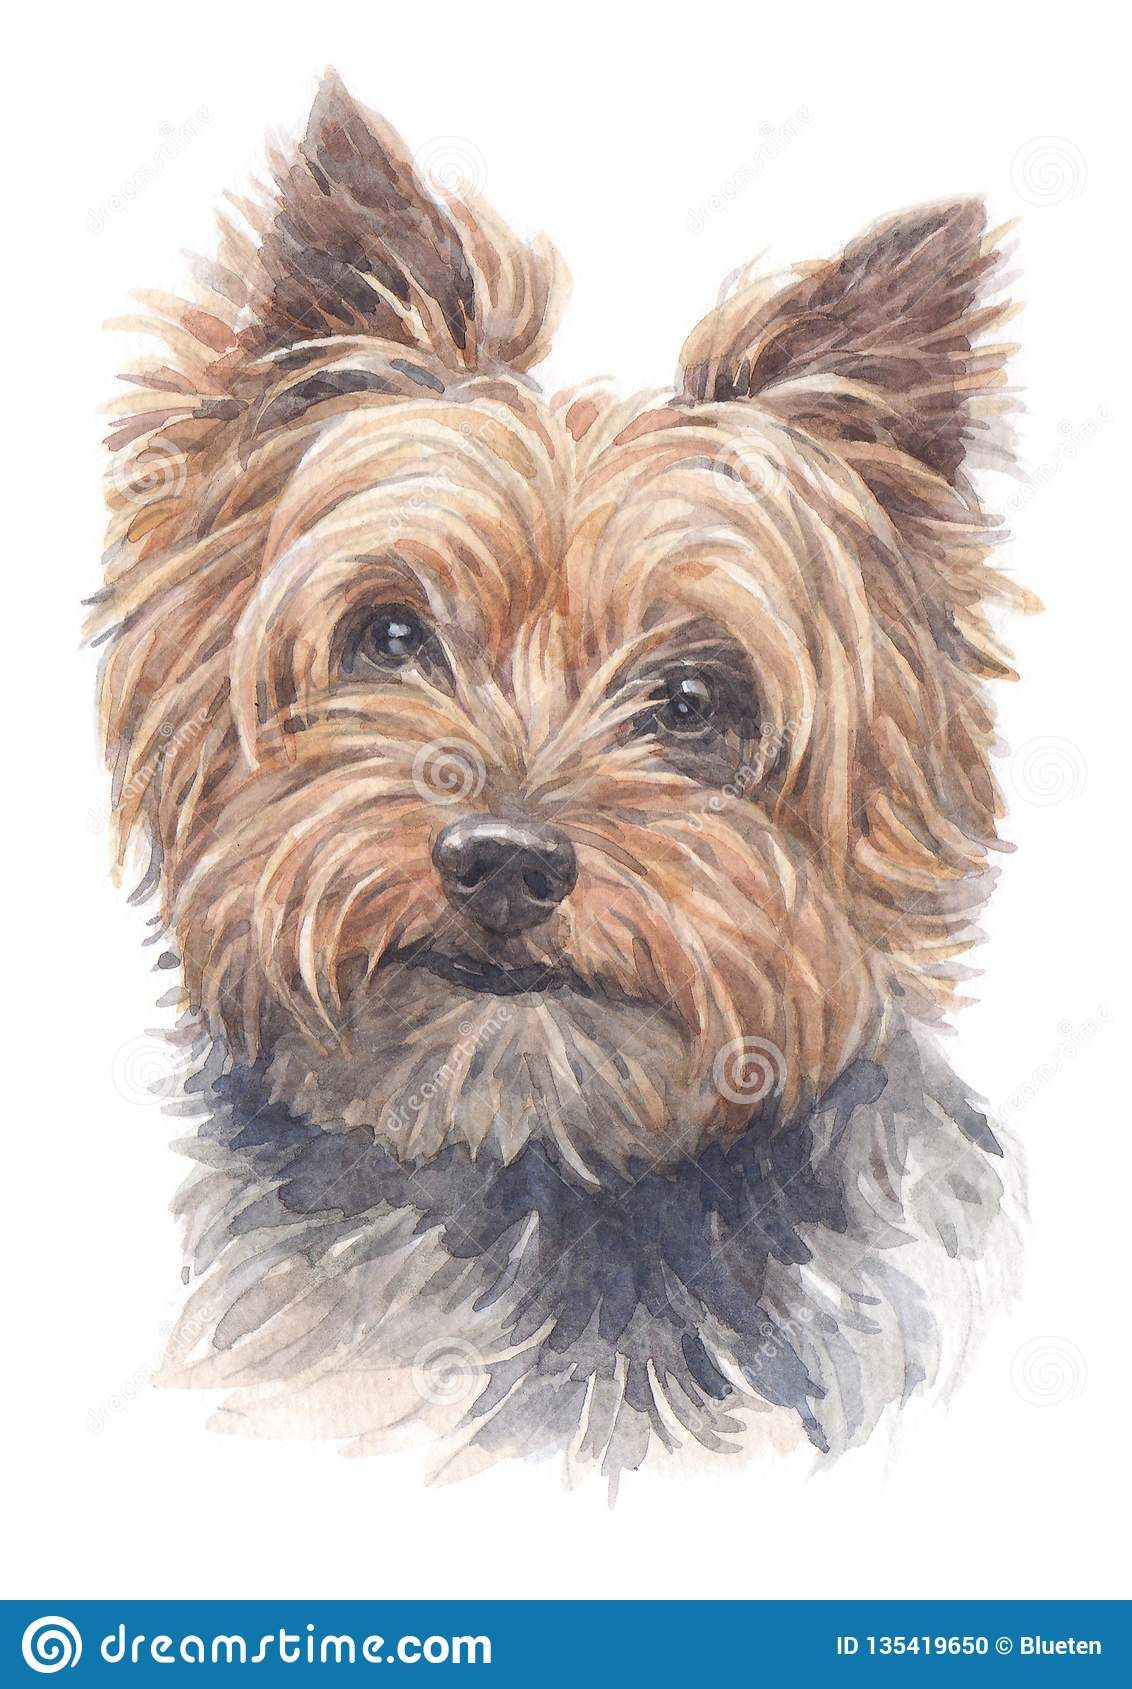 Photo About Head Painting Of Yorkshire Terrier Dog Breed Water Colour Technique Image Of Techniques Watercolour Head Yorkie Painting Watercolor Dog Dog Art [ 1689 x 1132 Pixel ]